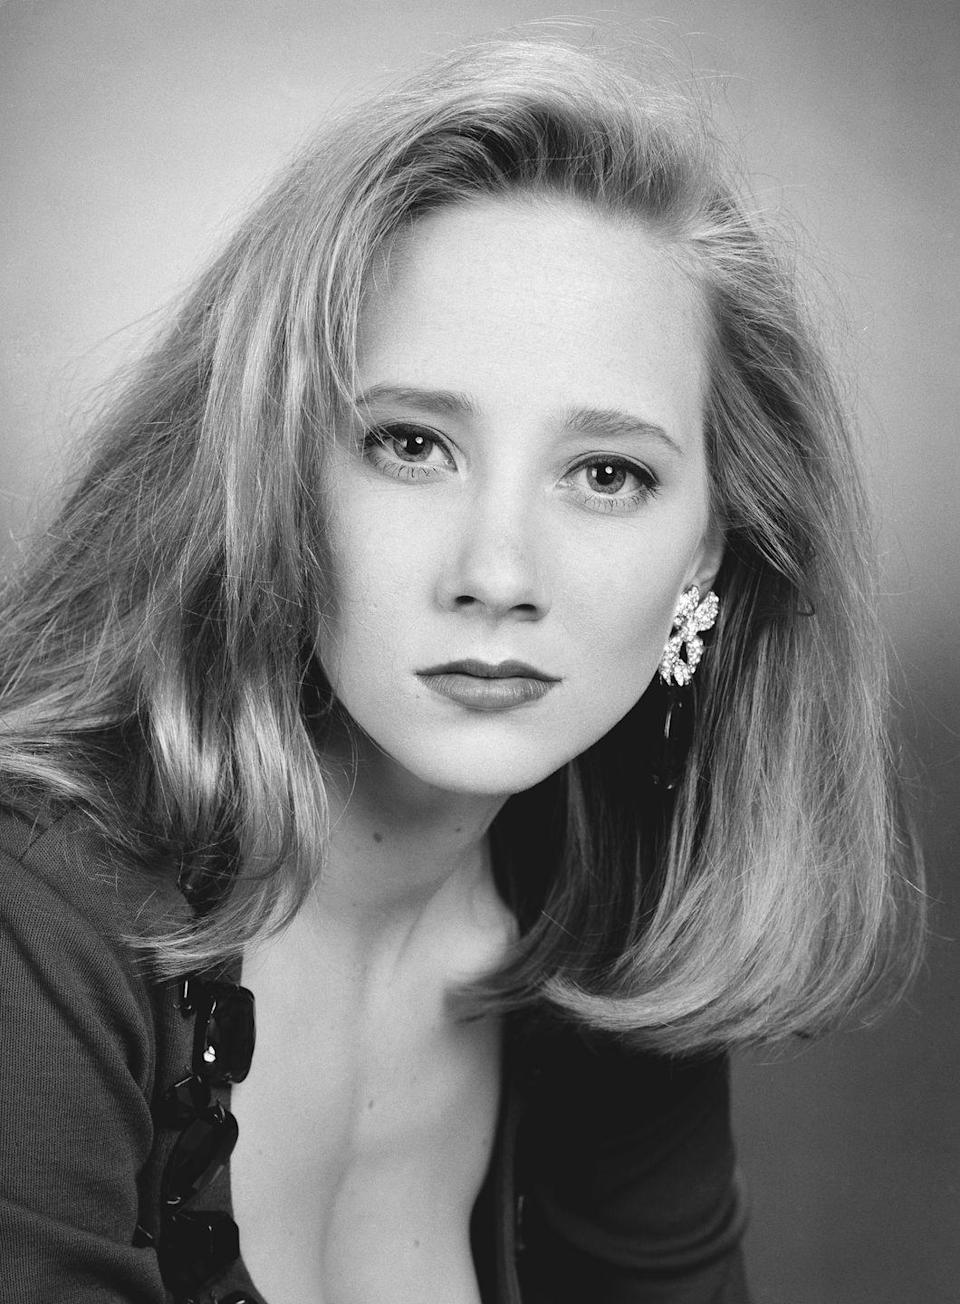 <p>The actress is best known for her roles in films spanning the late '90s and early '00s, but Anne Heche's first major role was in television on <em>Another World</em> from 1988 to 1992.</p>